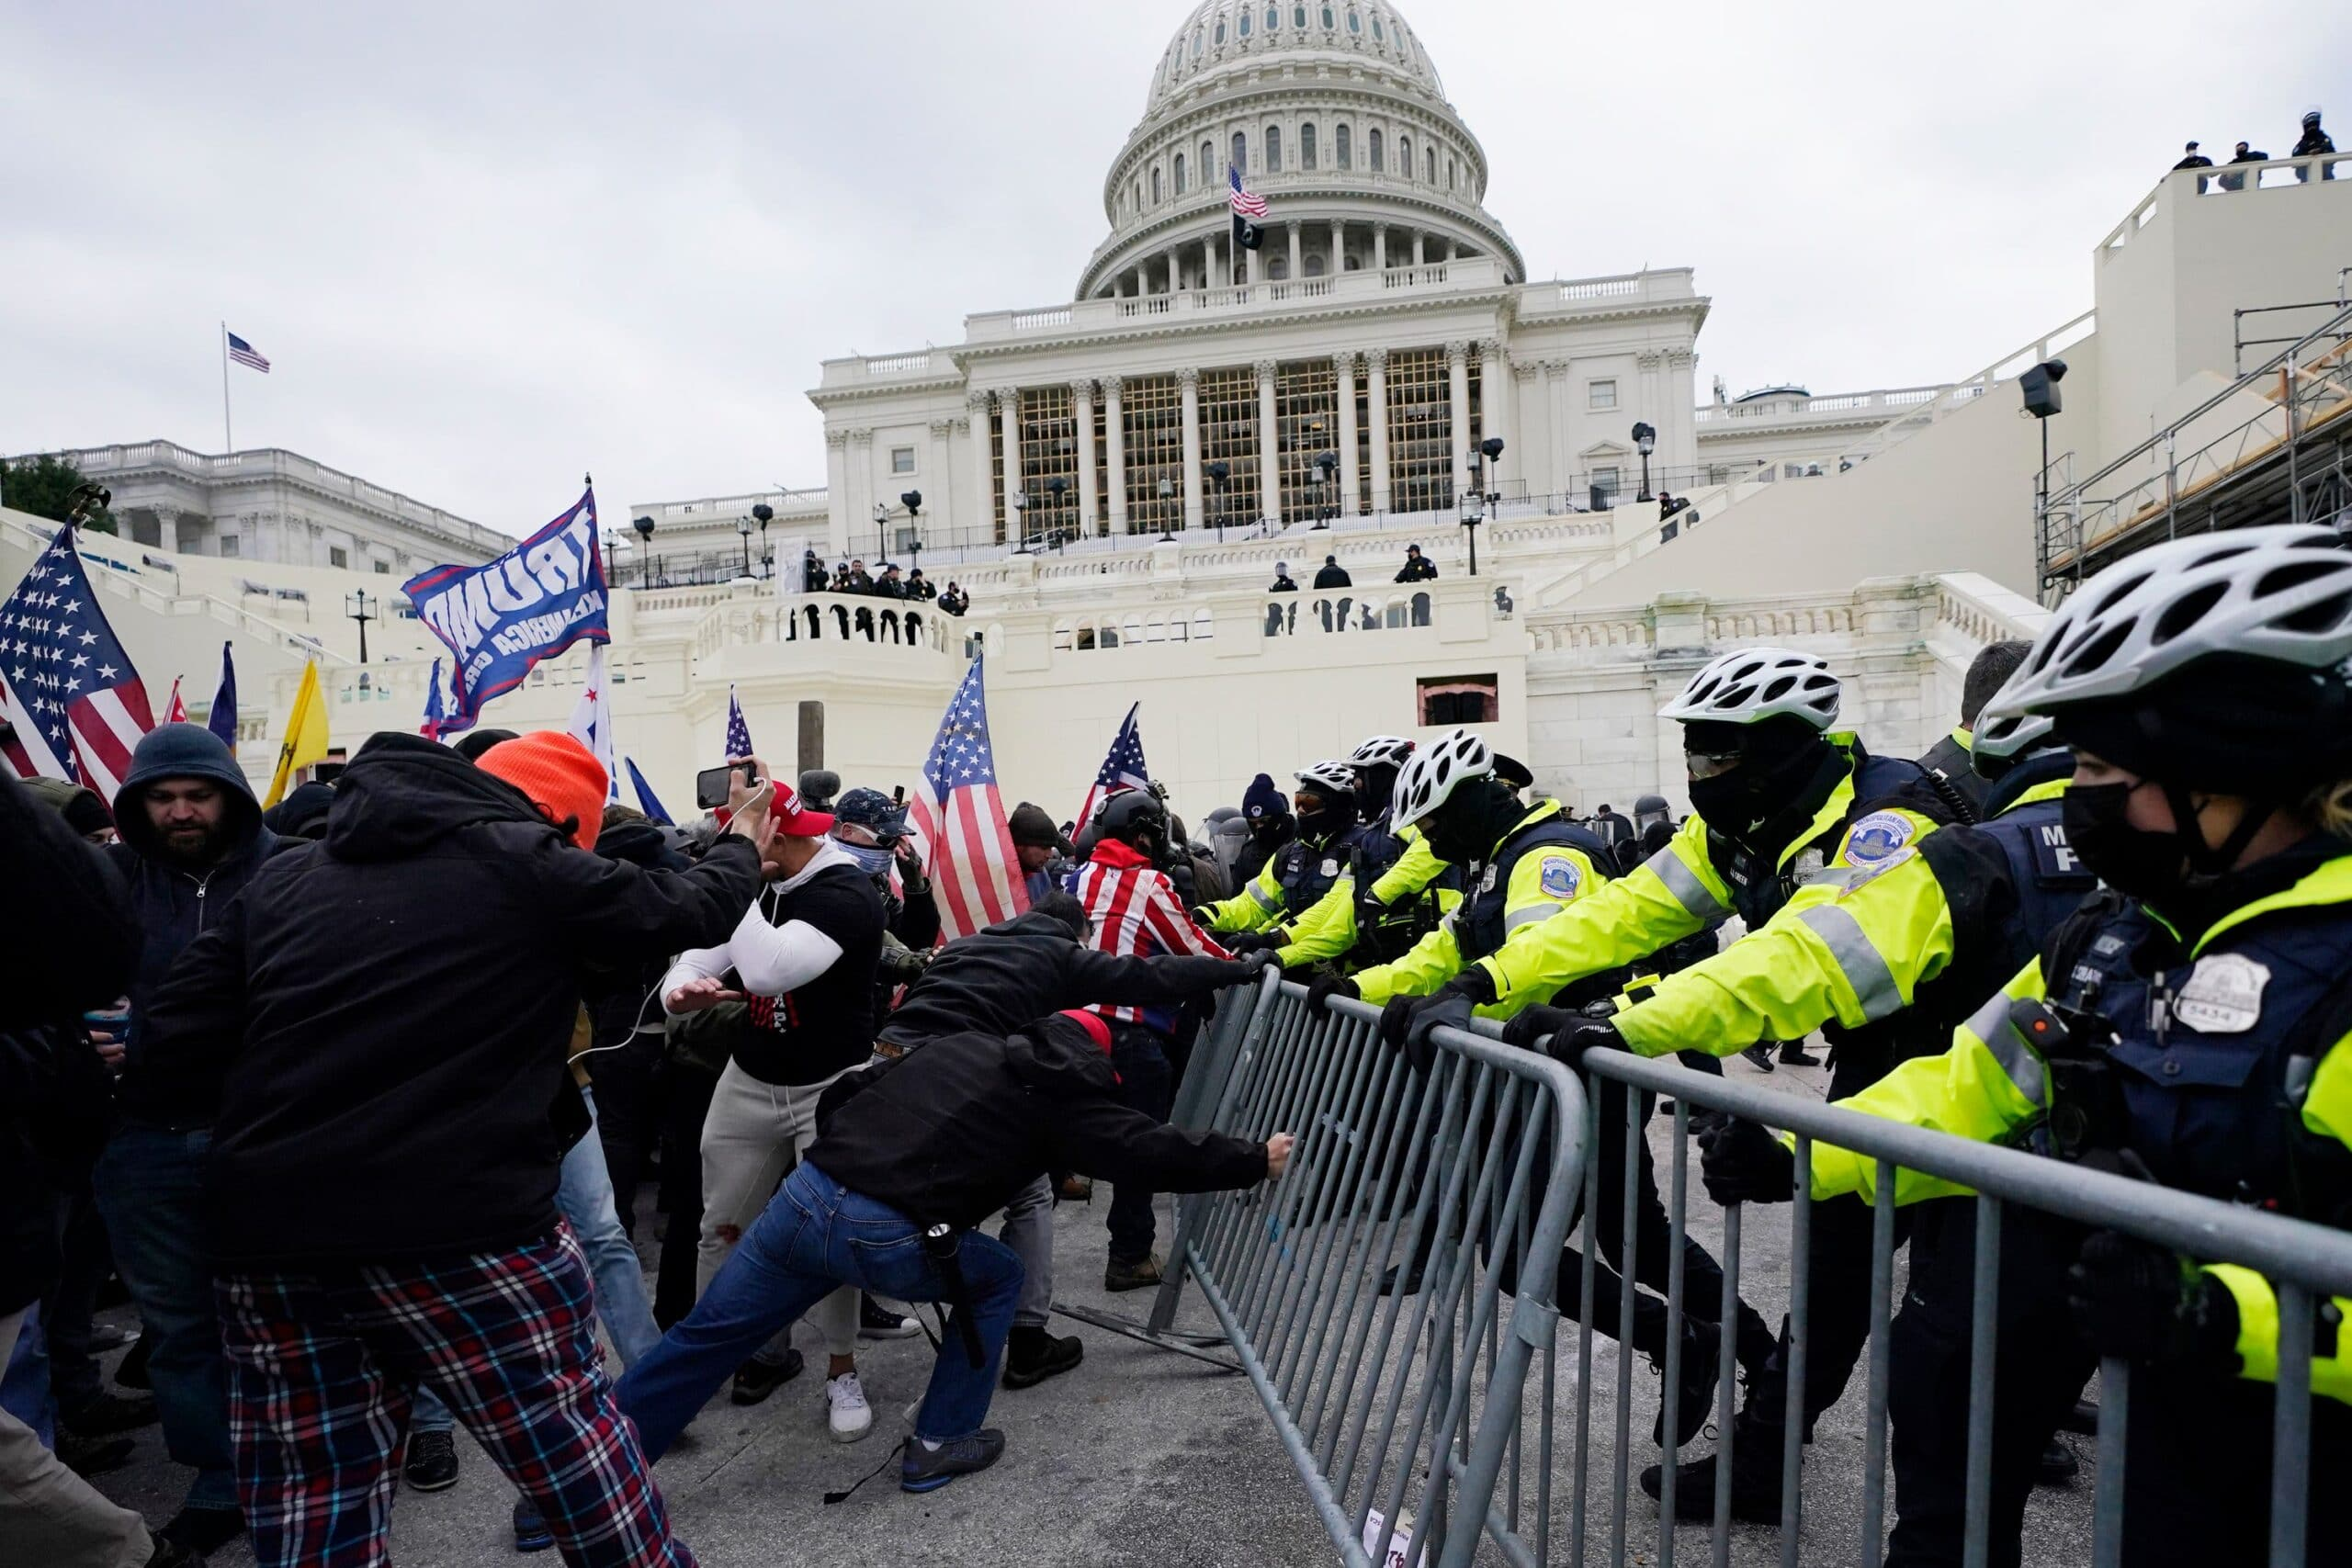 capitol demonstrations scaled